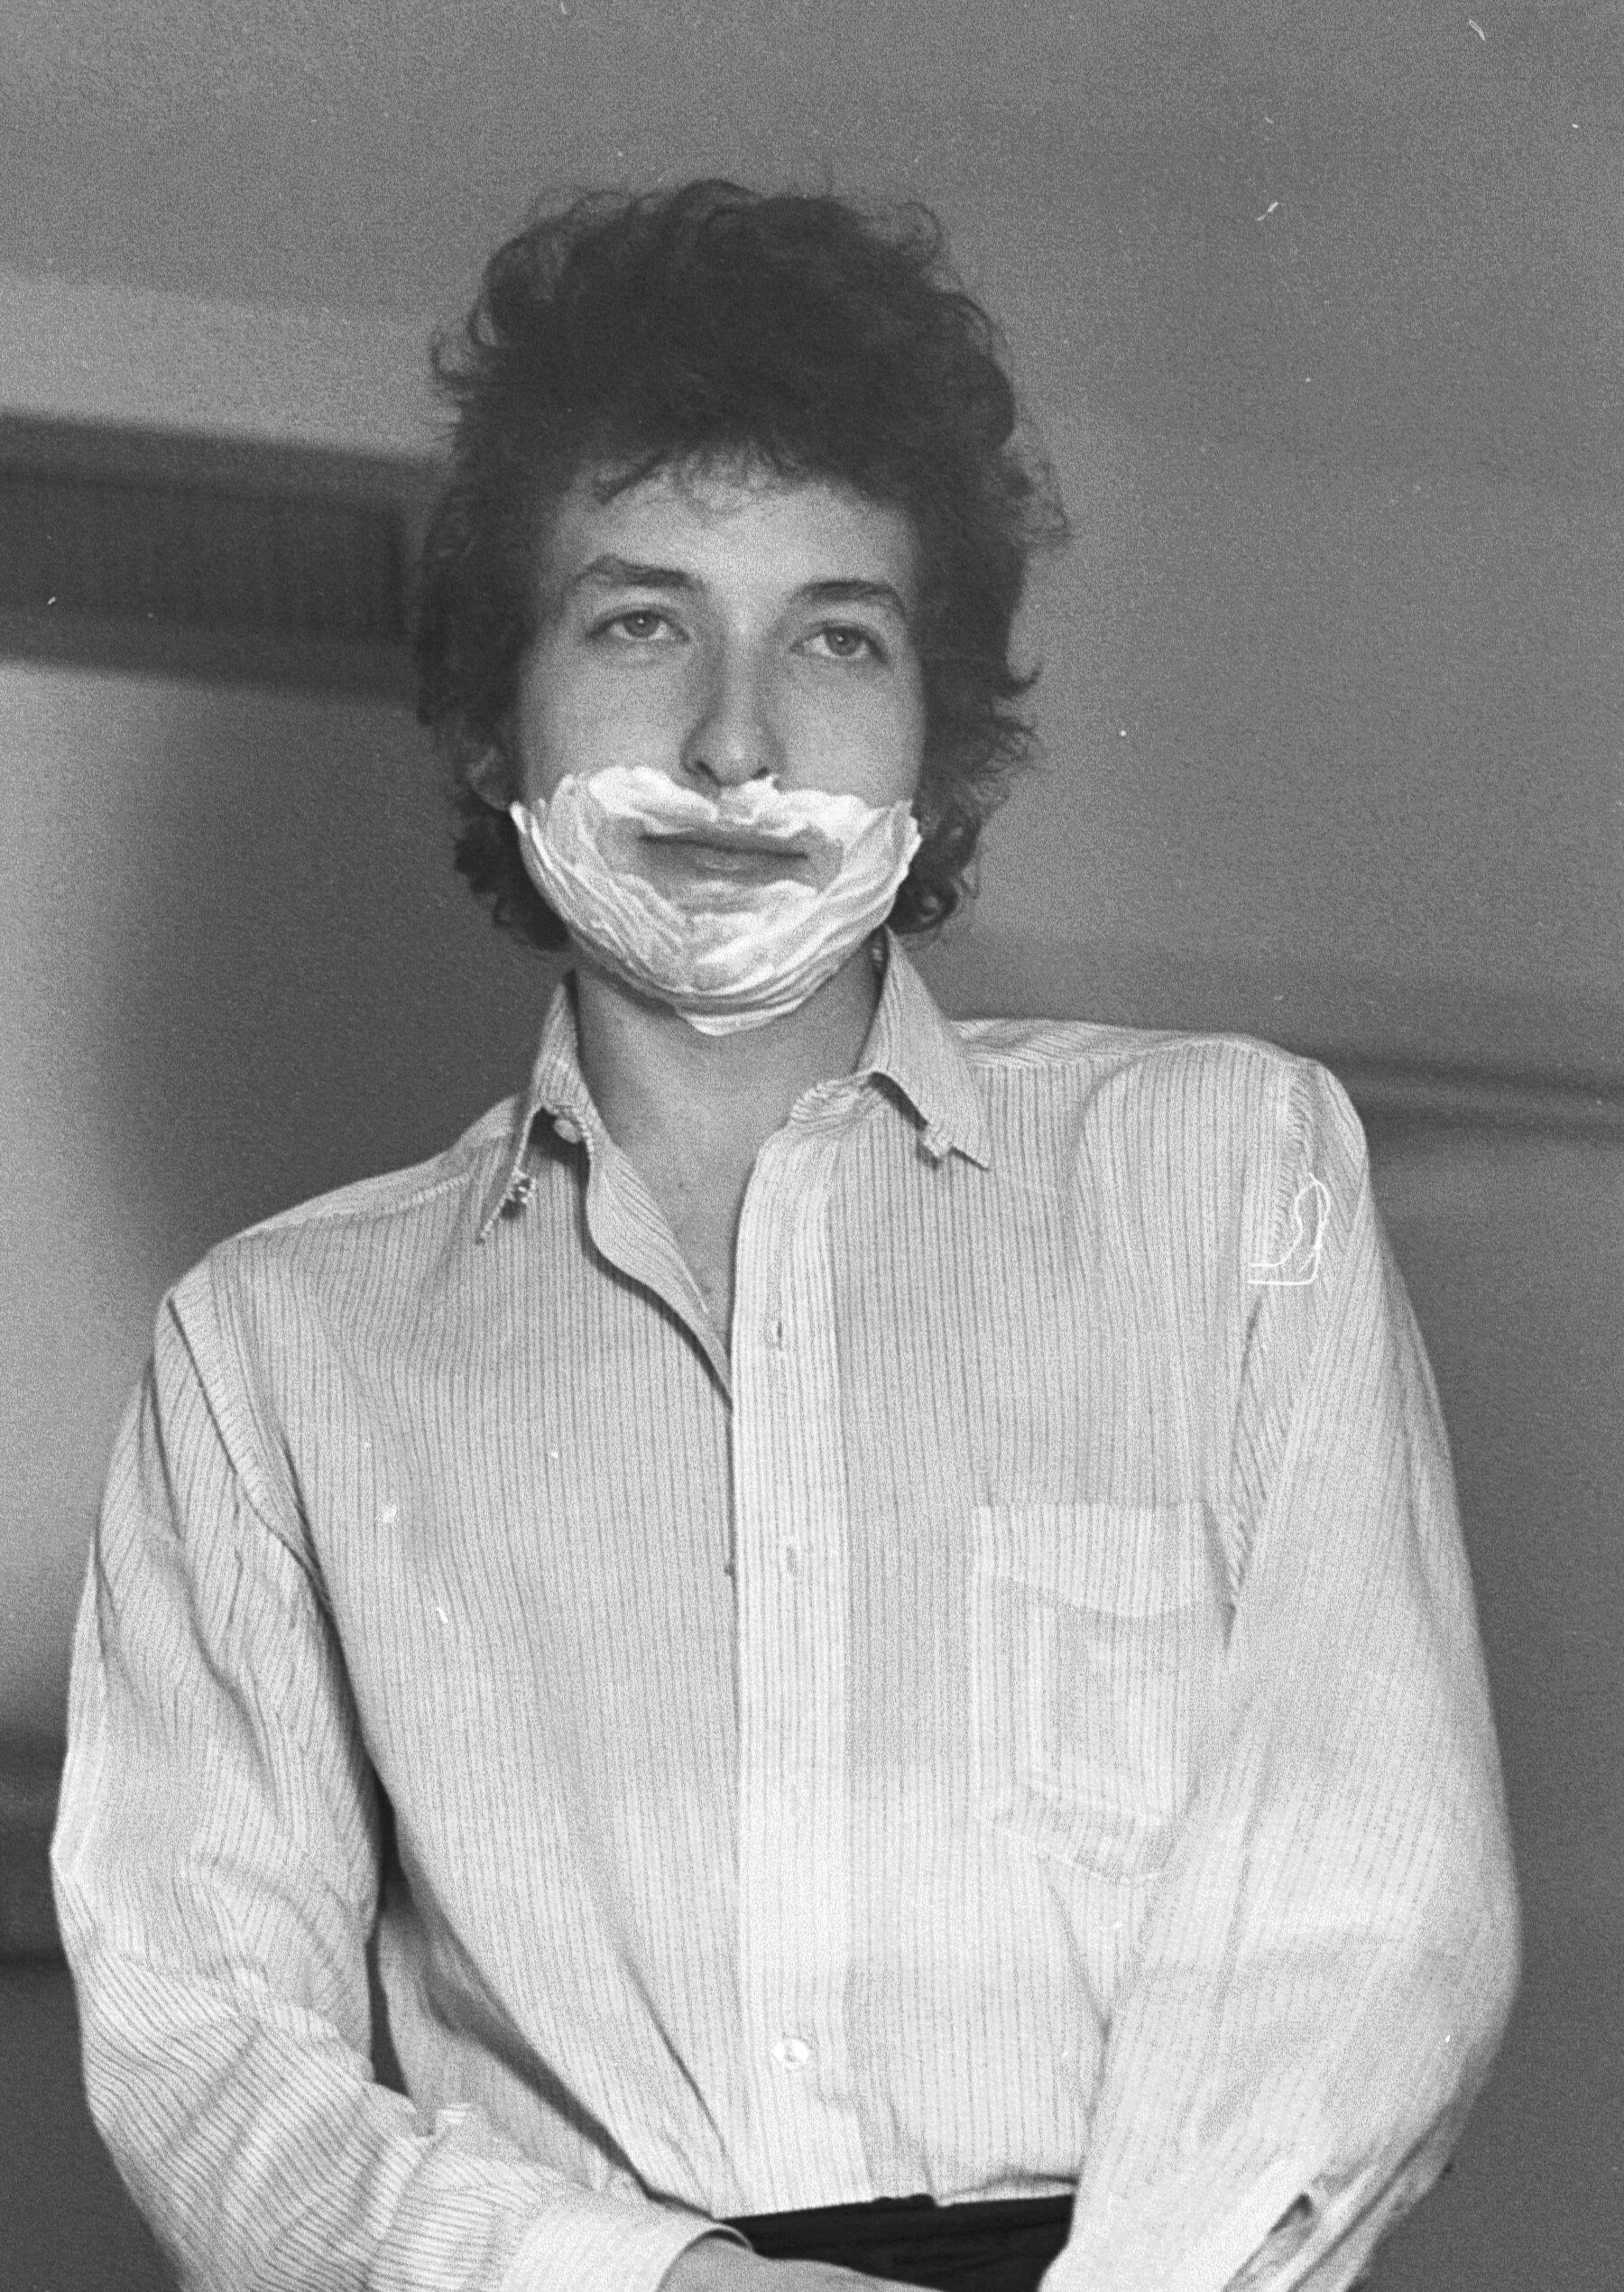 Happy Birthday Bob Dylan Our Most Underappreciated Comic The New York Times